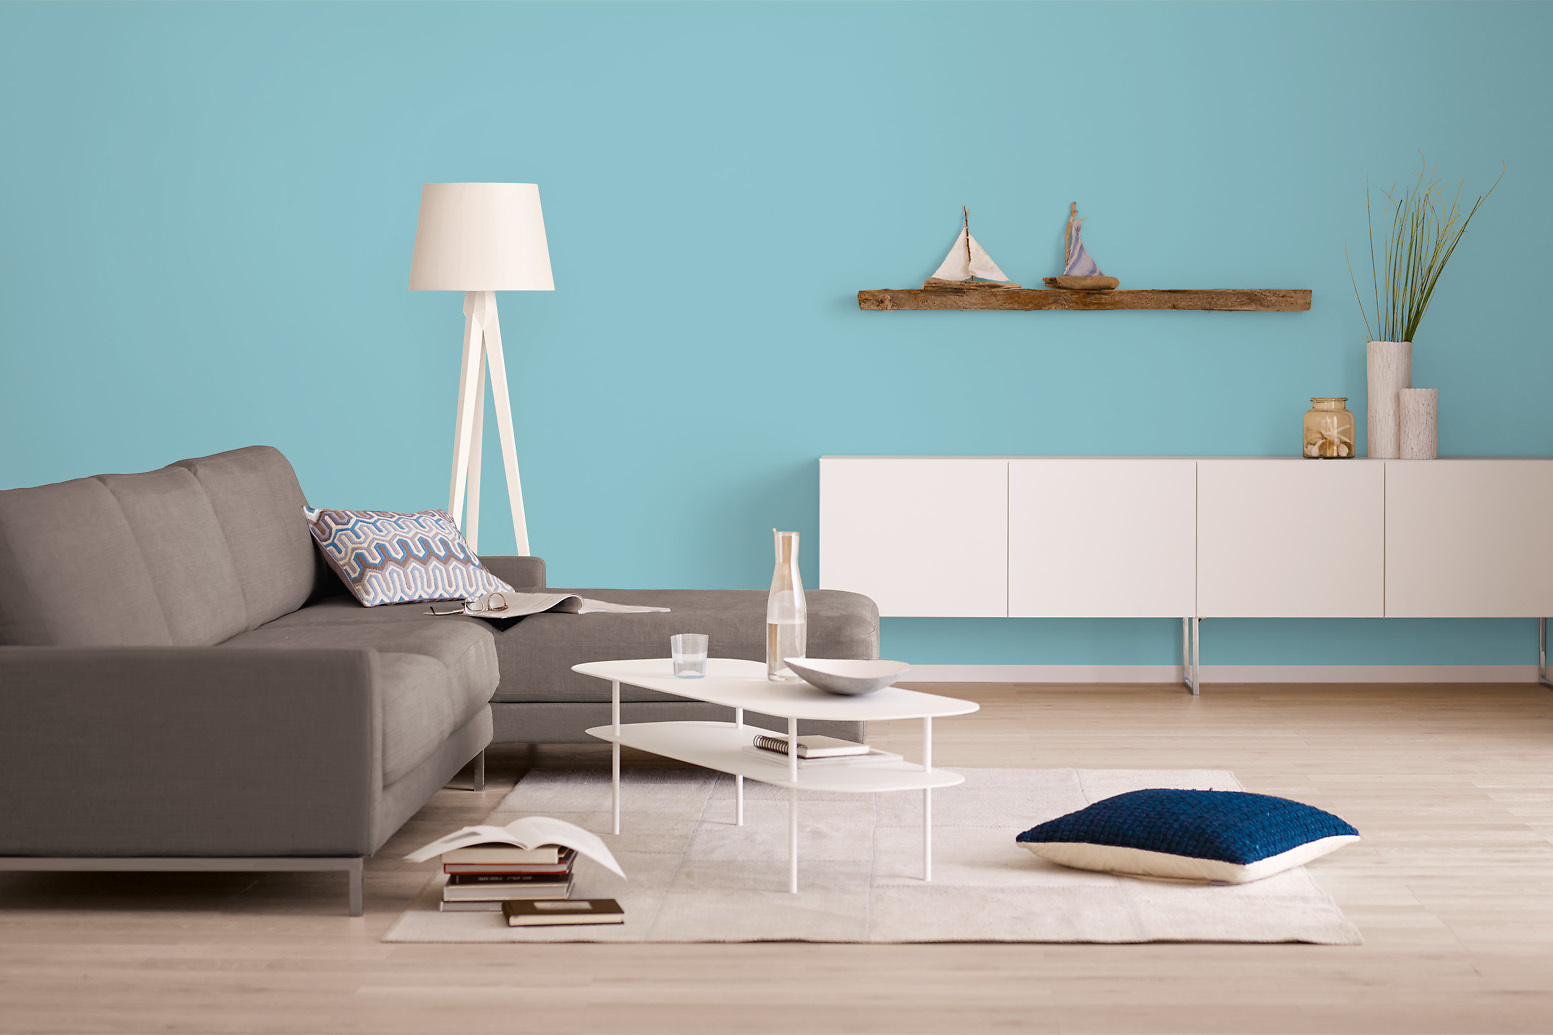 innenfarbe in grau blau eisblau streichen alpina. Black Bedroom Furniture Sets. Home Design Ideas